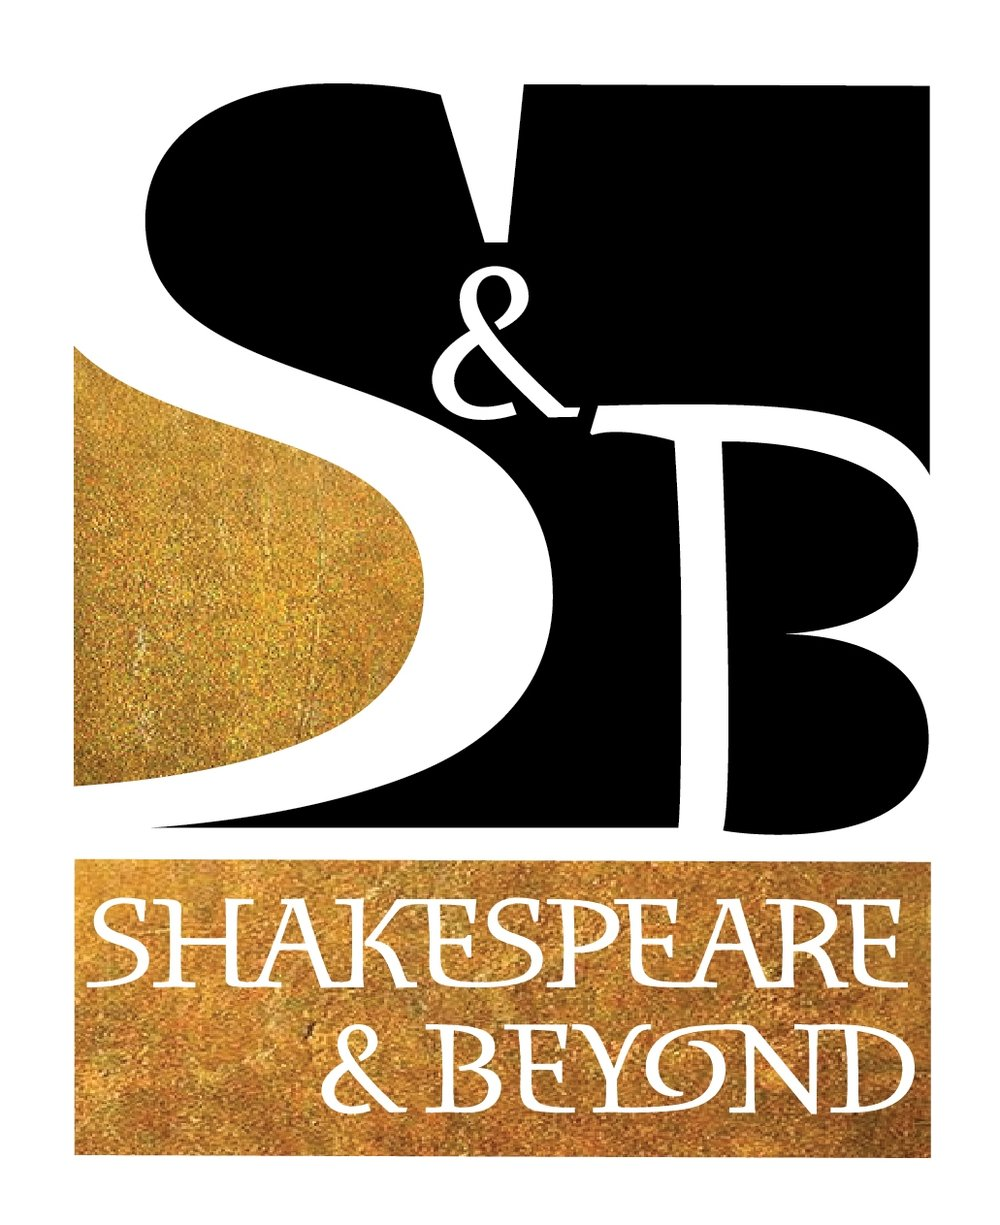 Shakespeare and Beyond_Version_6b_nov11-02-03-03.jpg